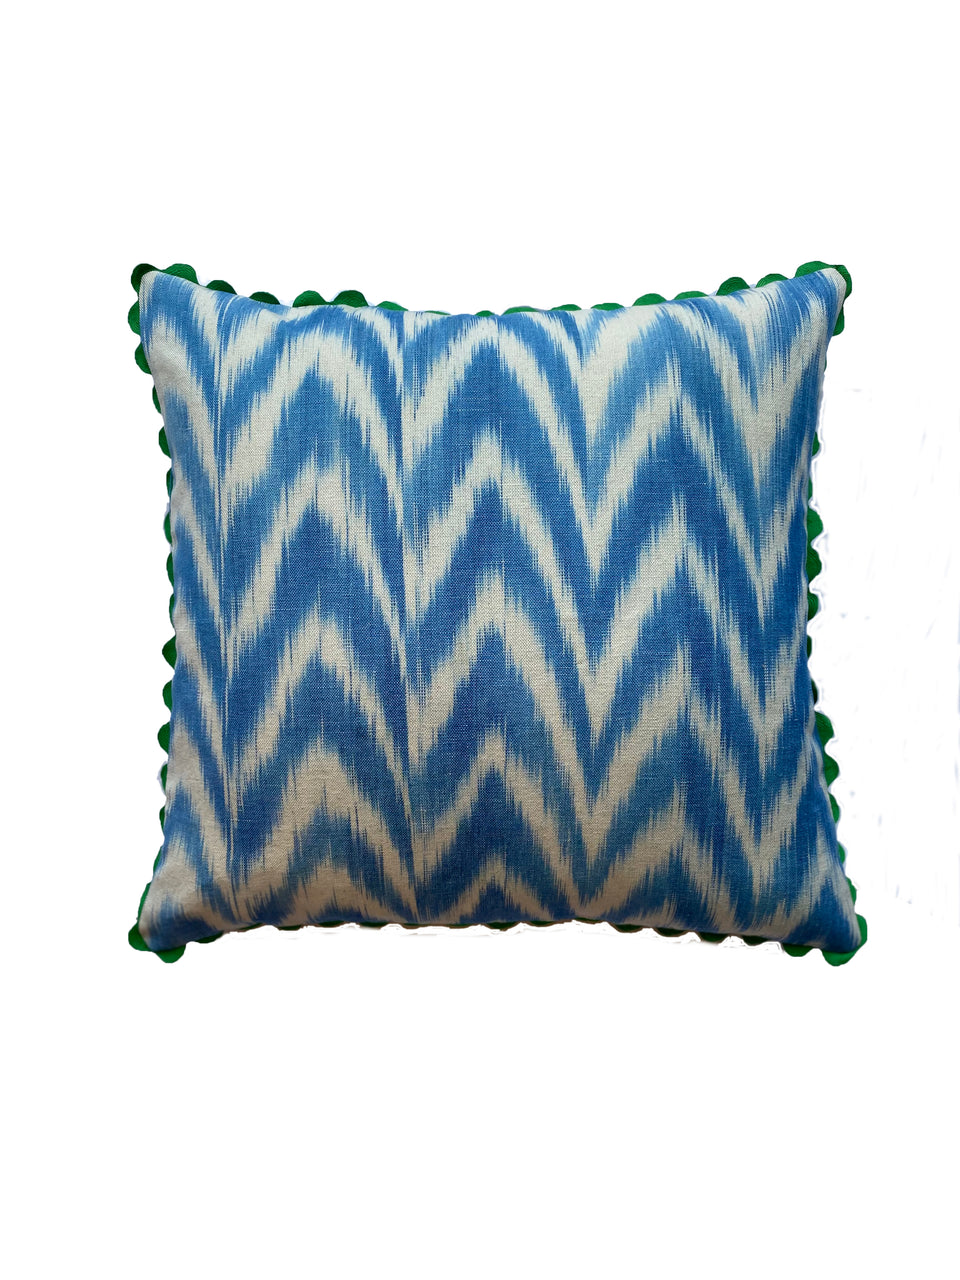 MALLORCAN FABRIC CUSHION - SKY BLUE FLAMESTITCH WITH GREEN SCALLOP EDGING